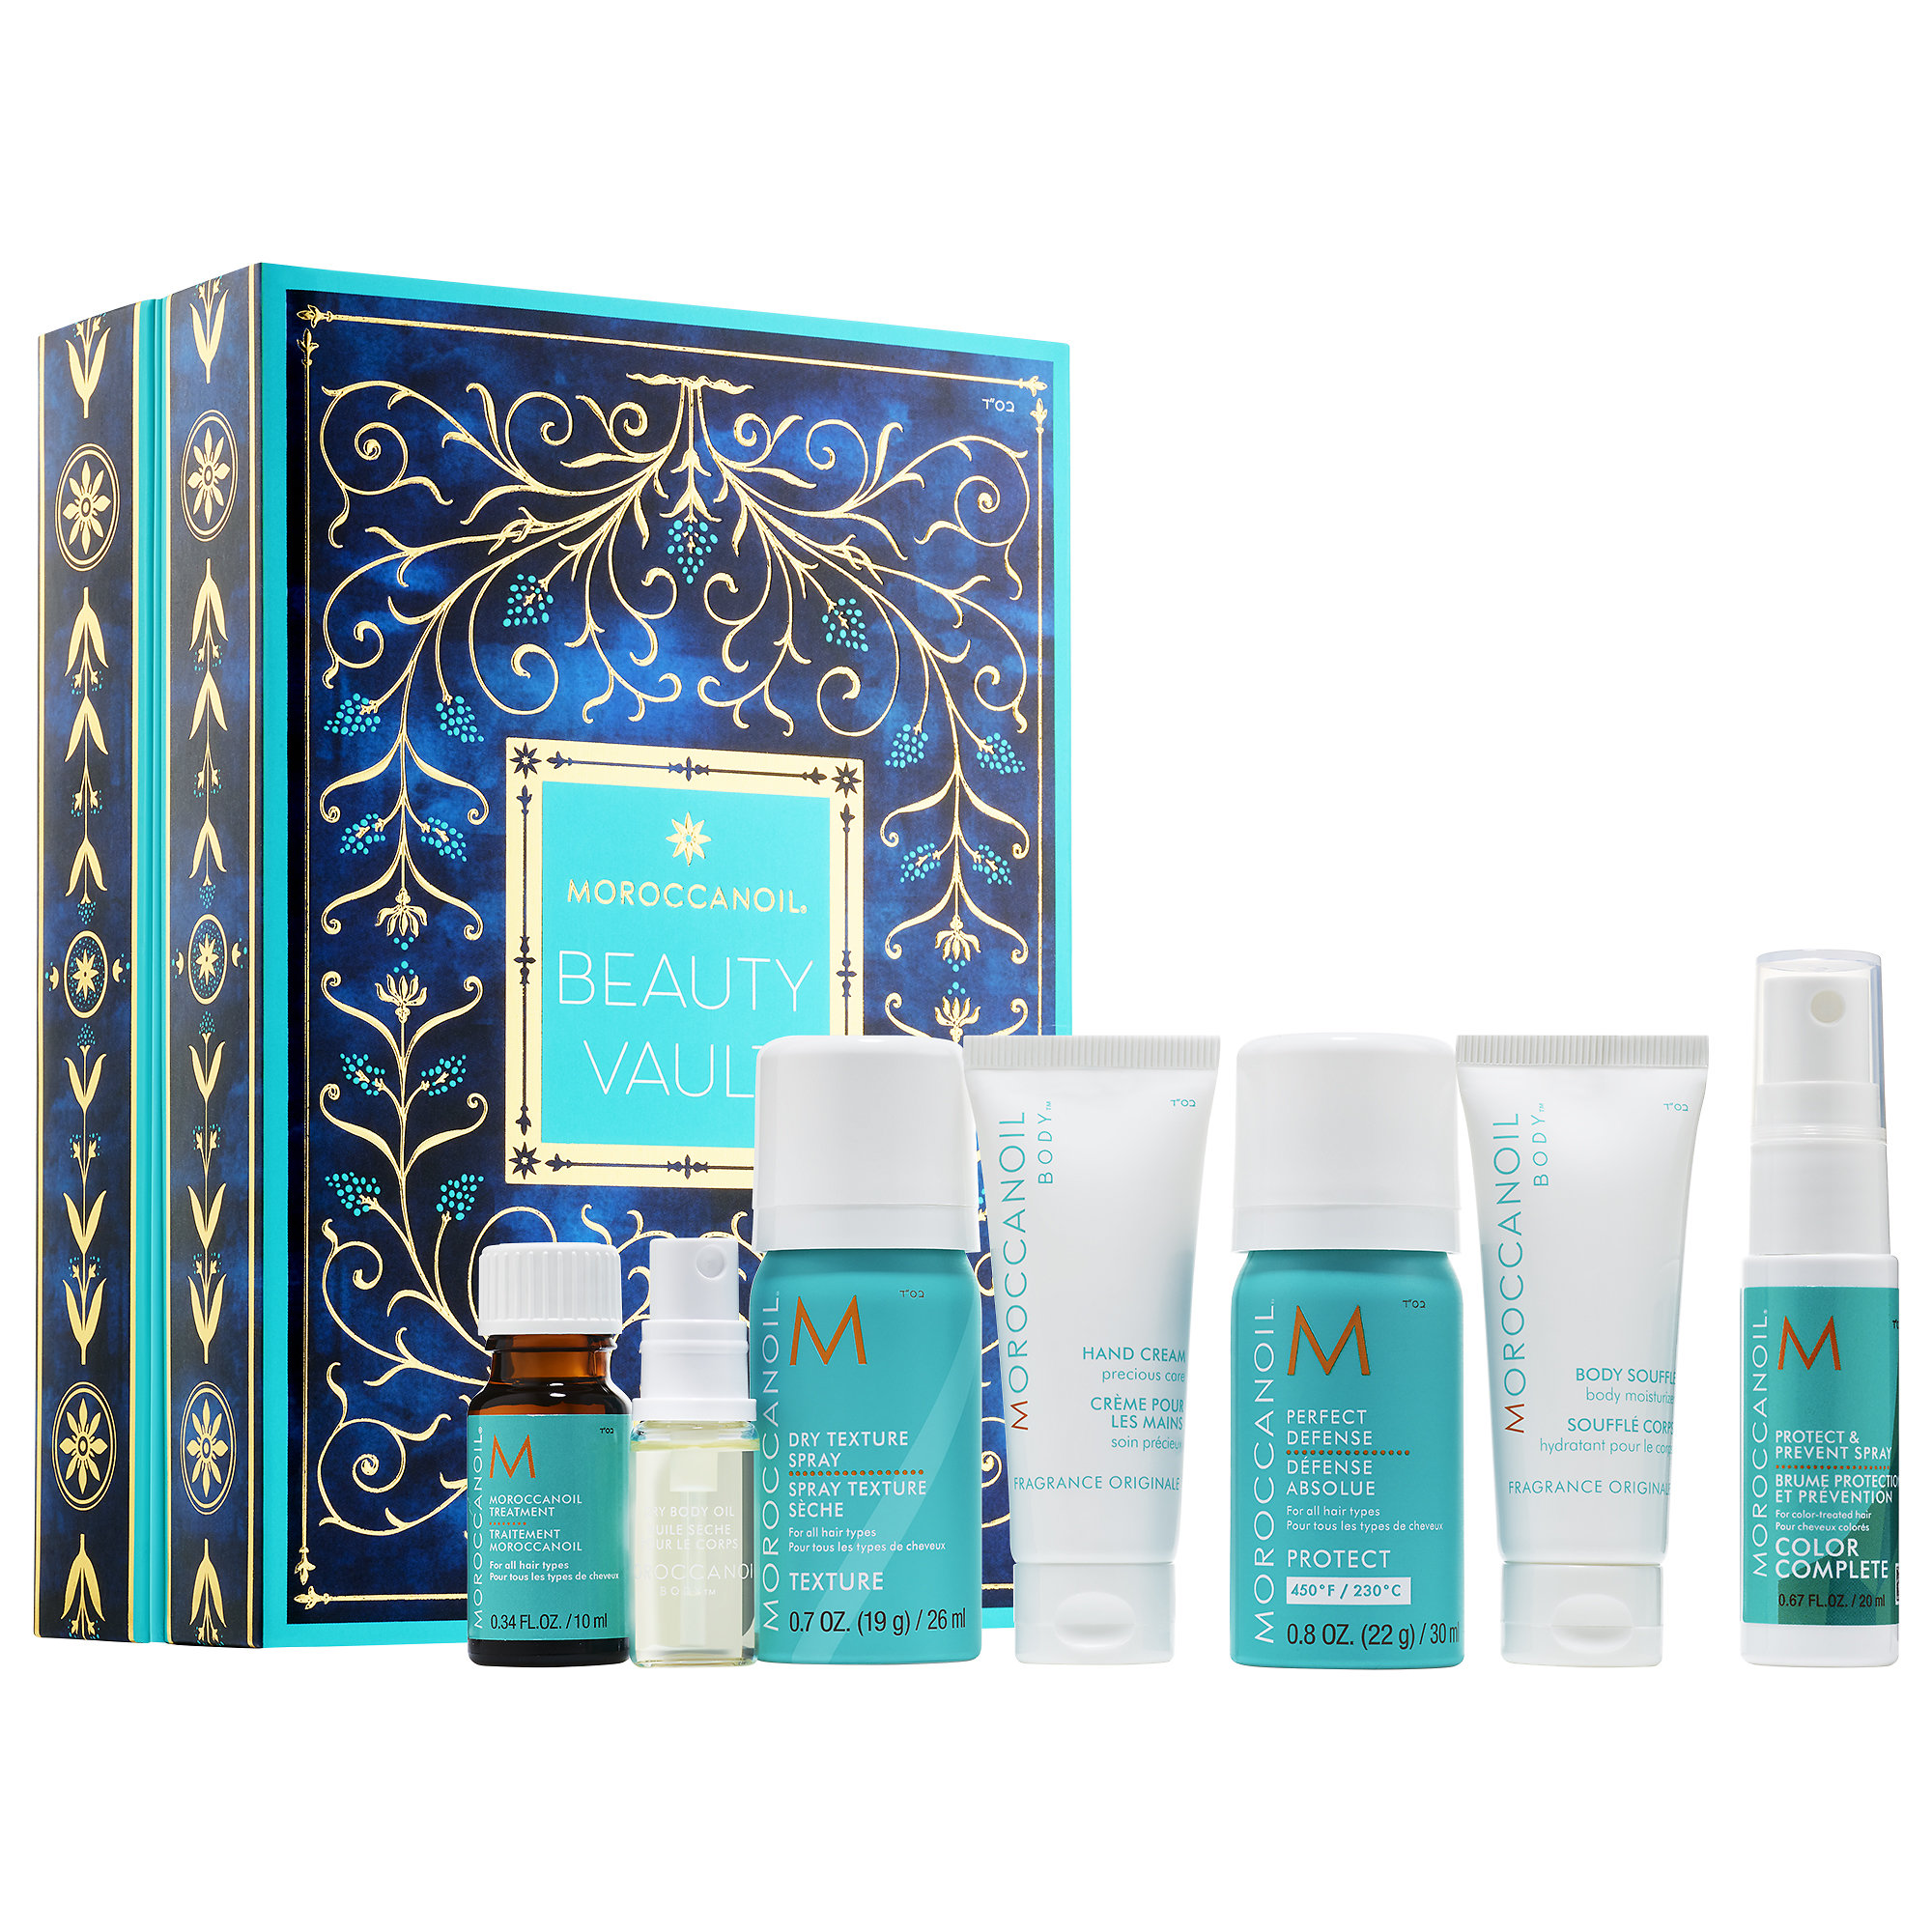 Moroccanoil Beauty Vault